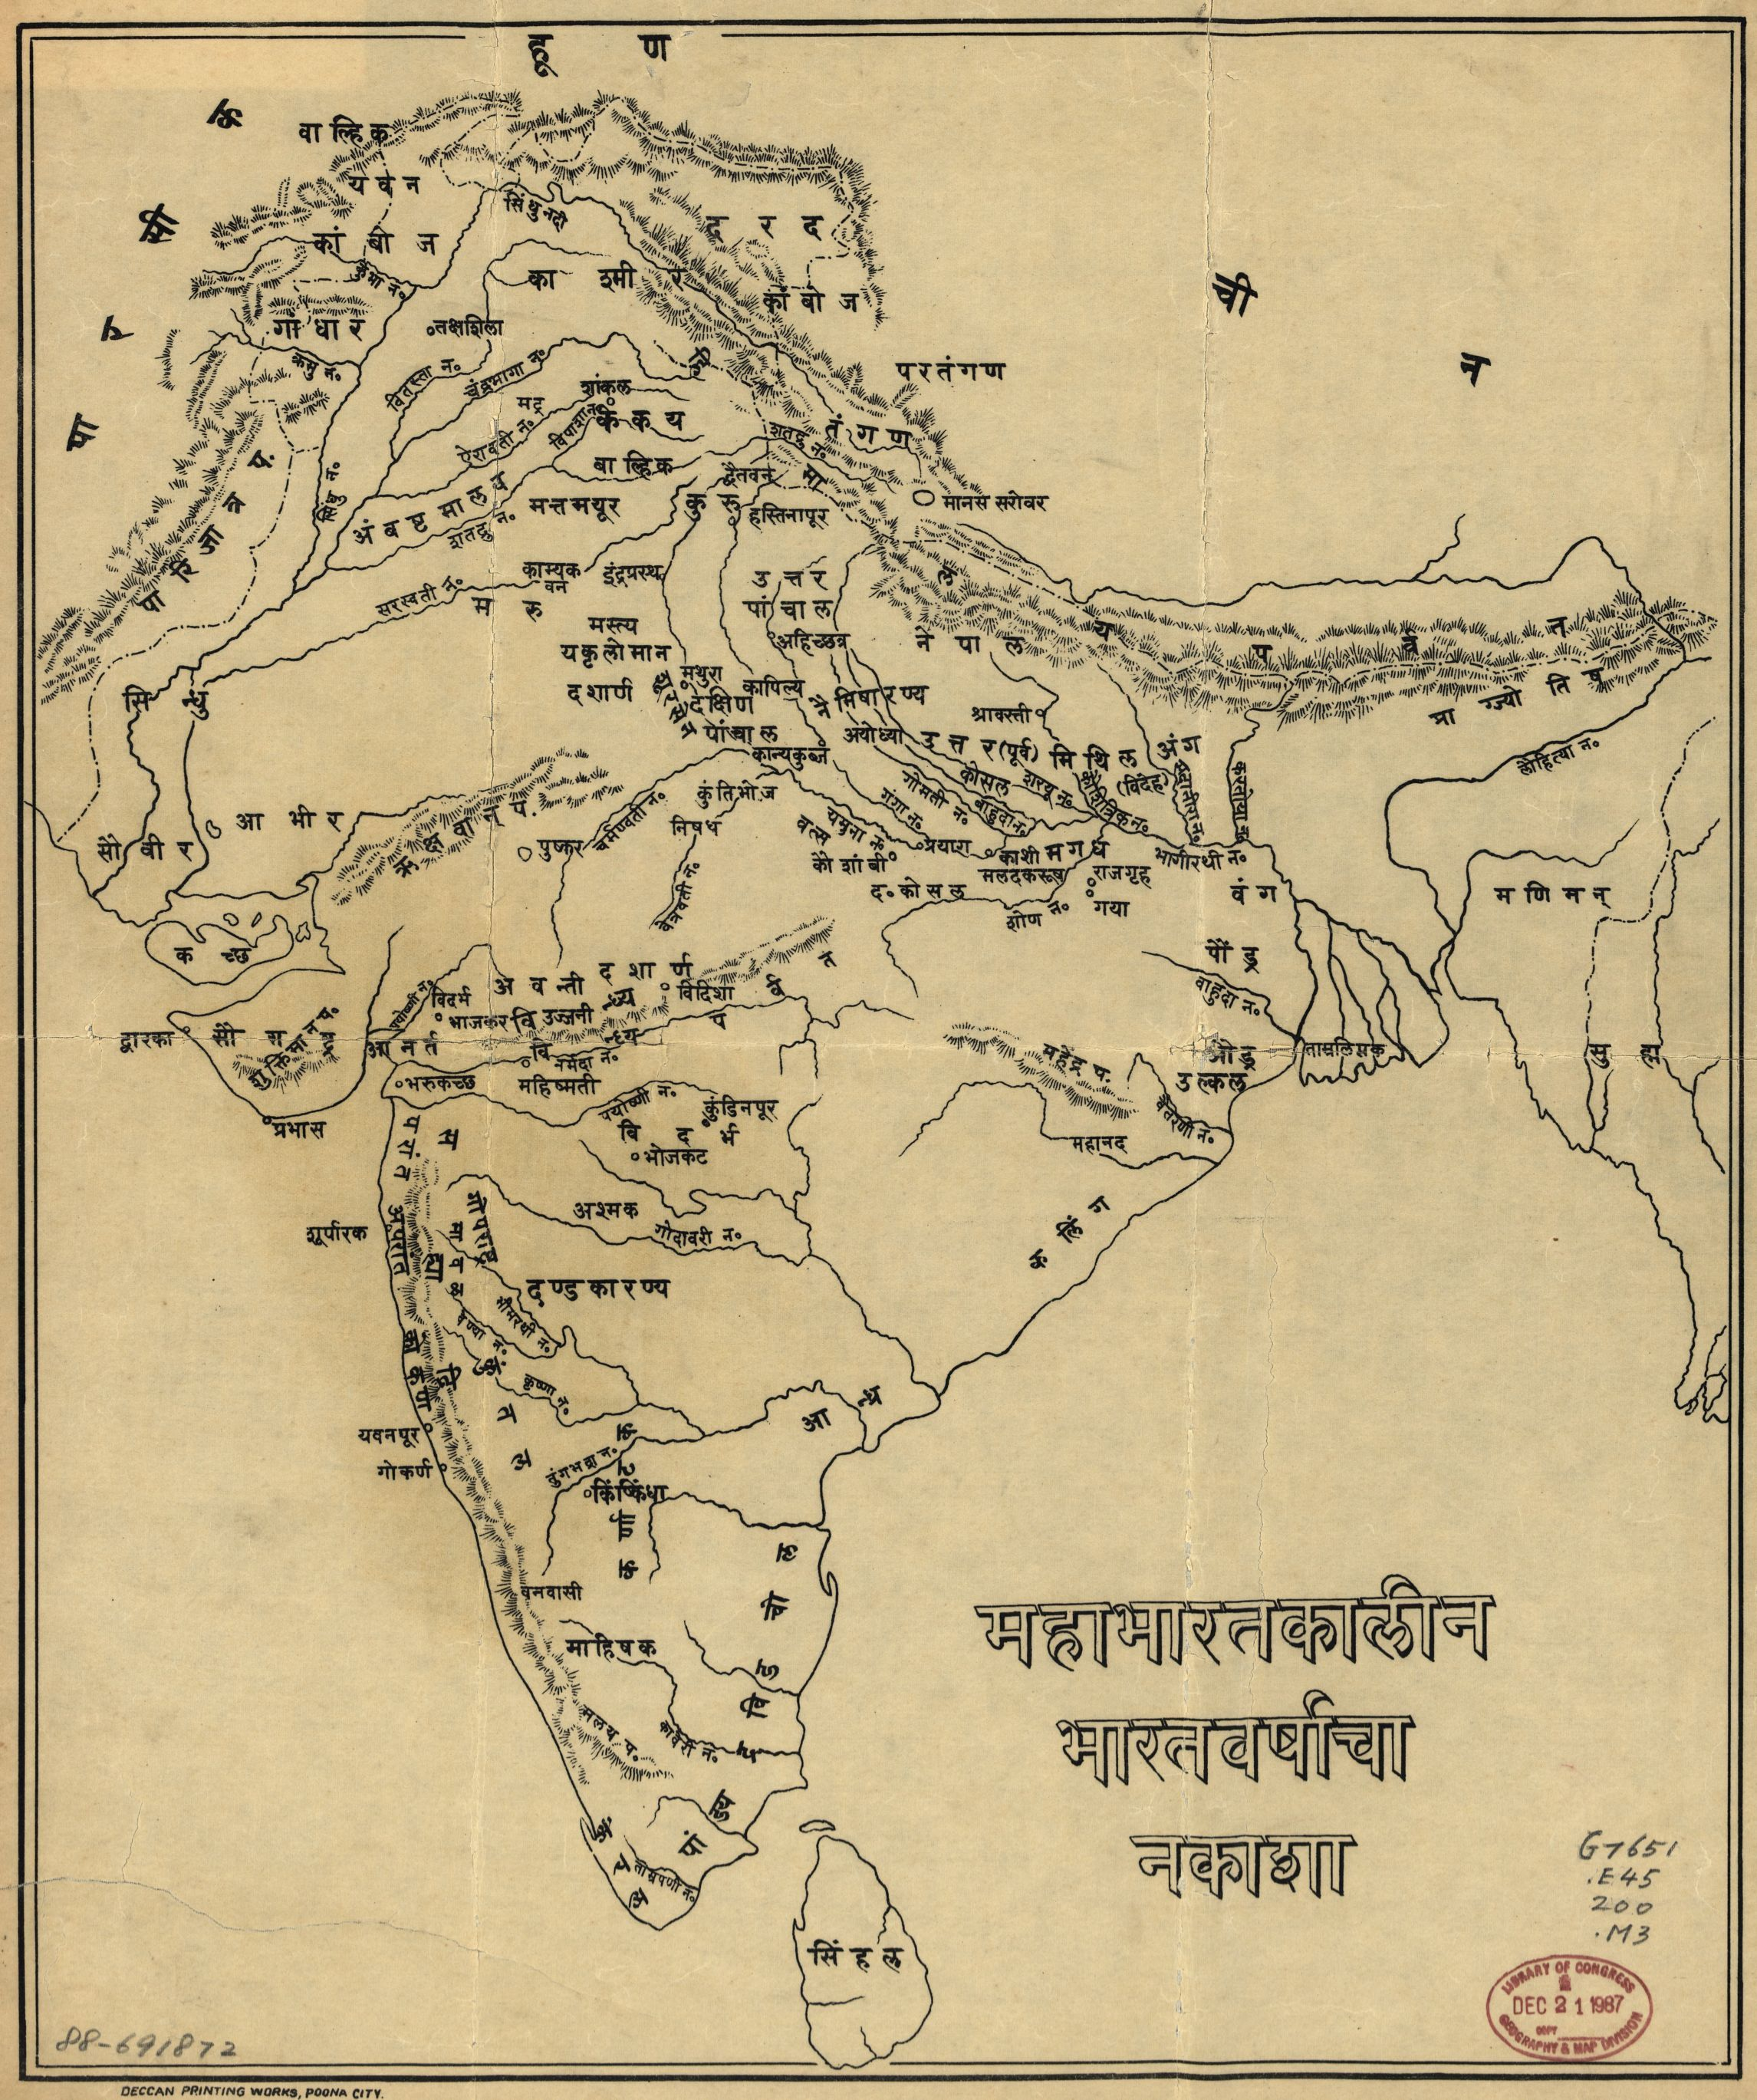 This Is A Map Of India As It Was In The Time Of Mahabharata